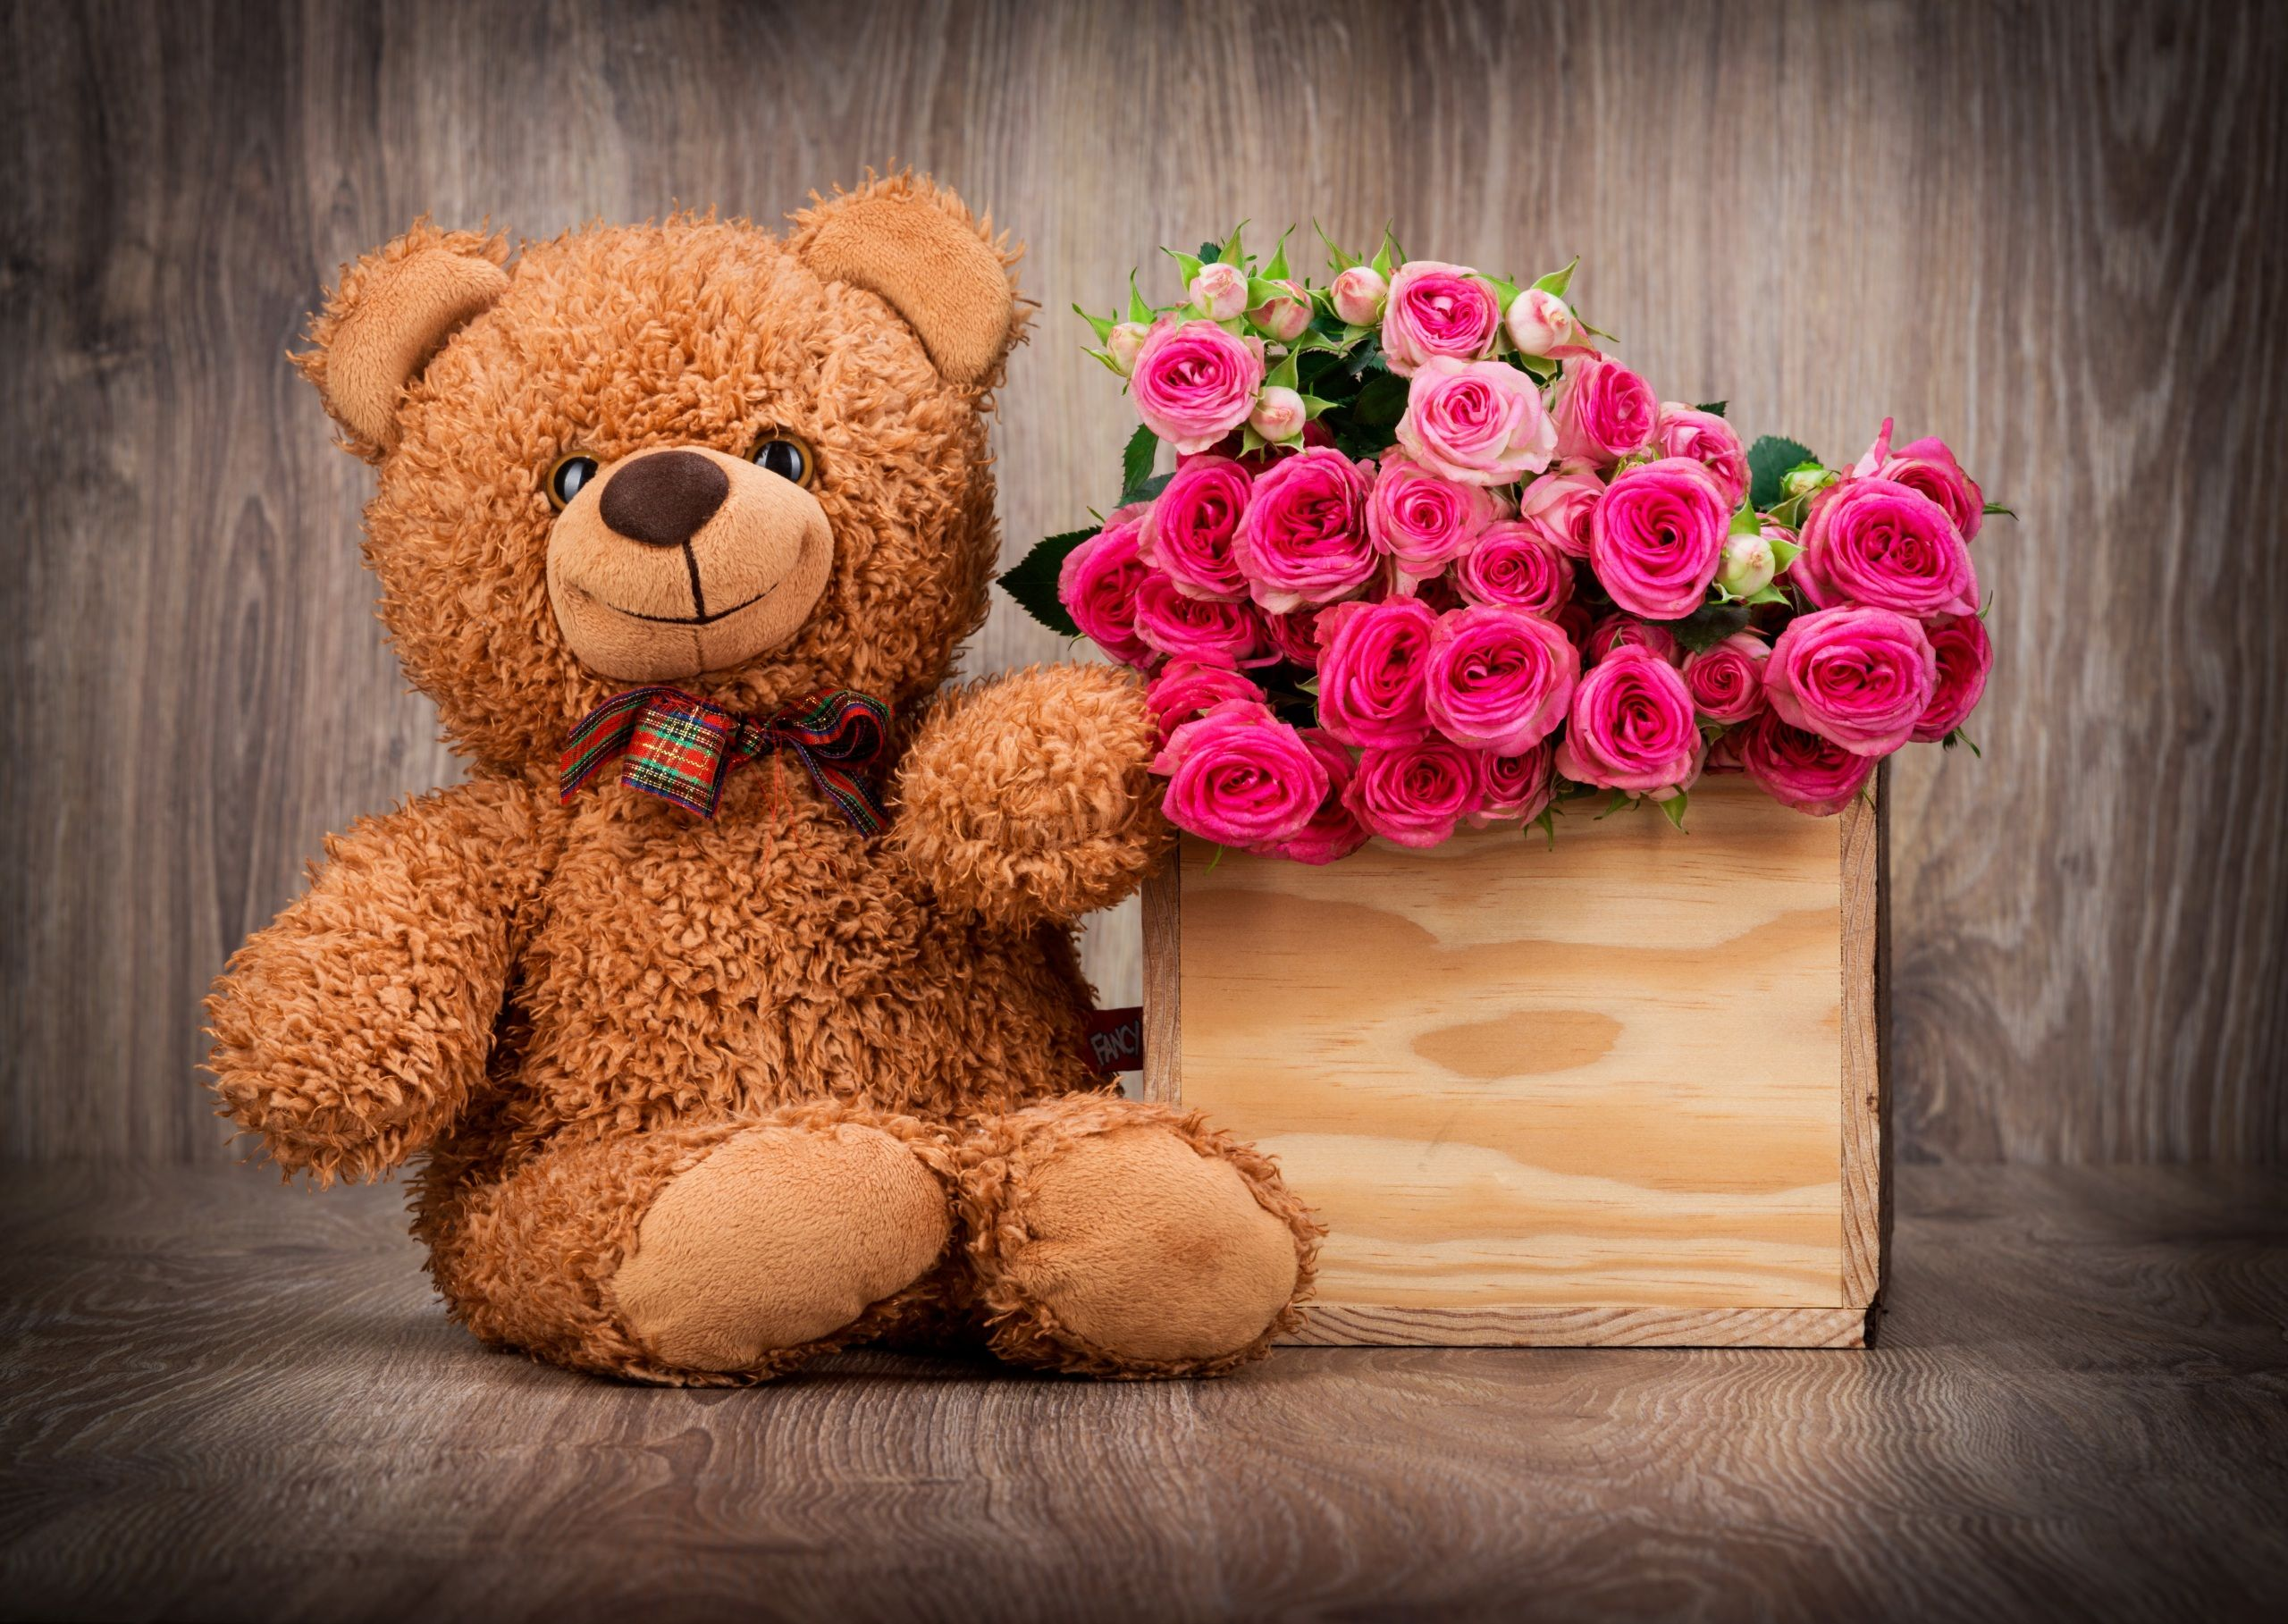 Cute Teddy Bear Wallpaper With Pink Roses In Box